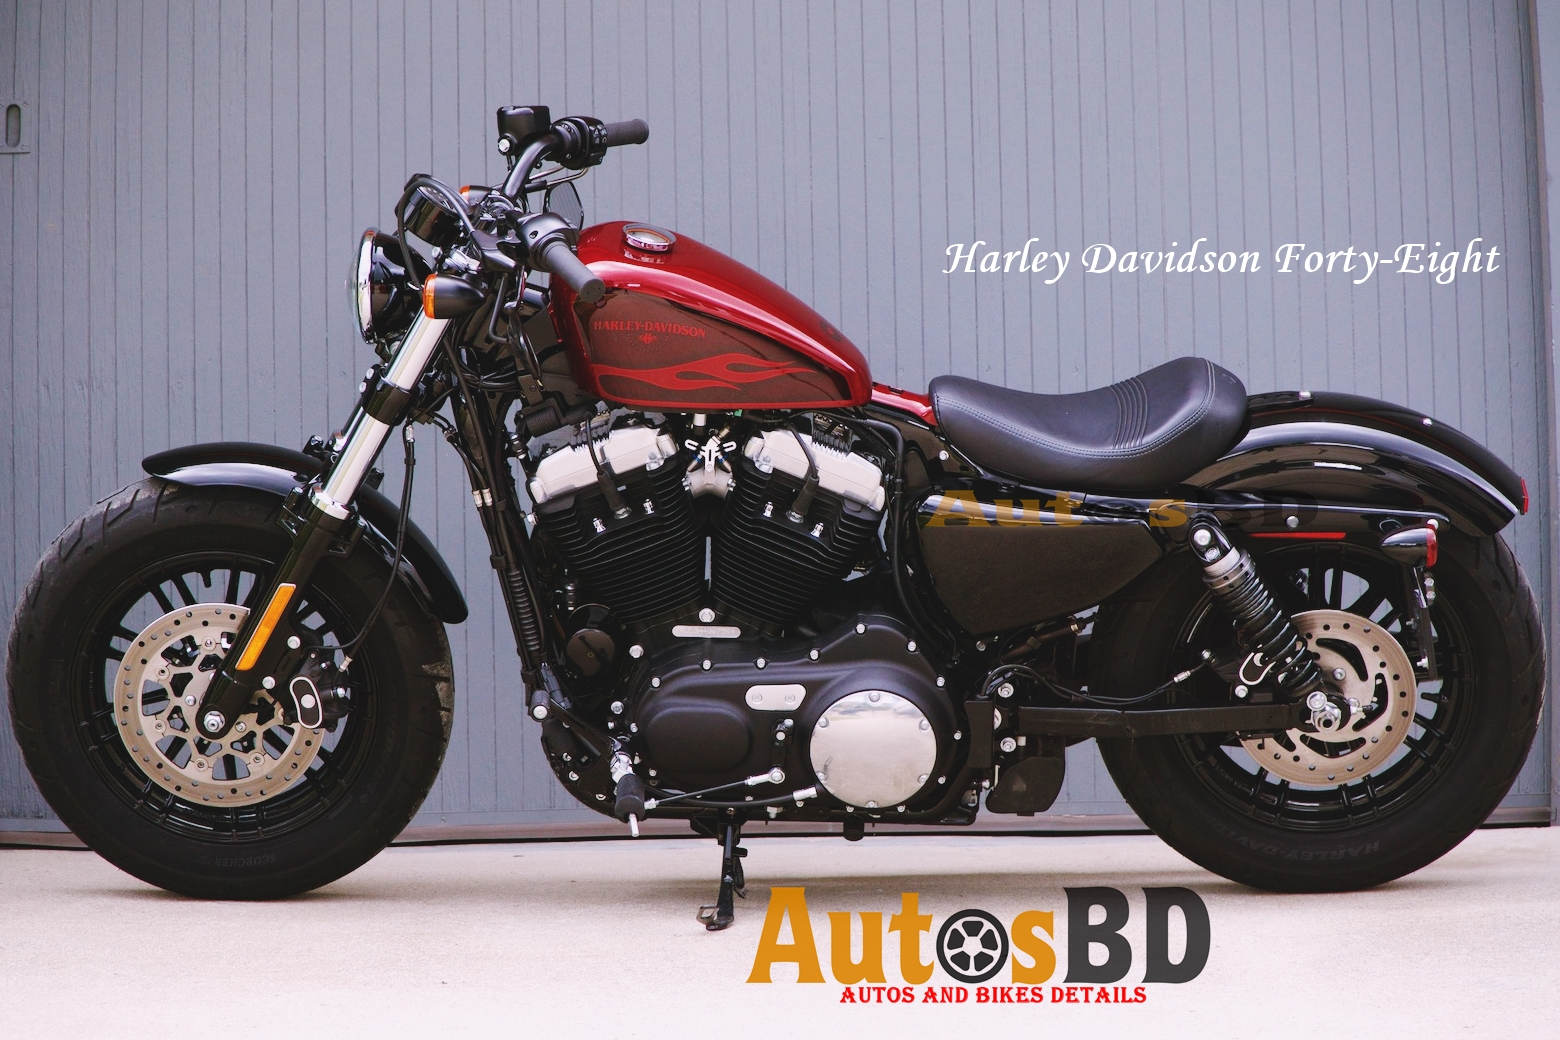 Harley Davidson Forty-Eight Specification